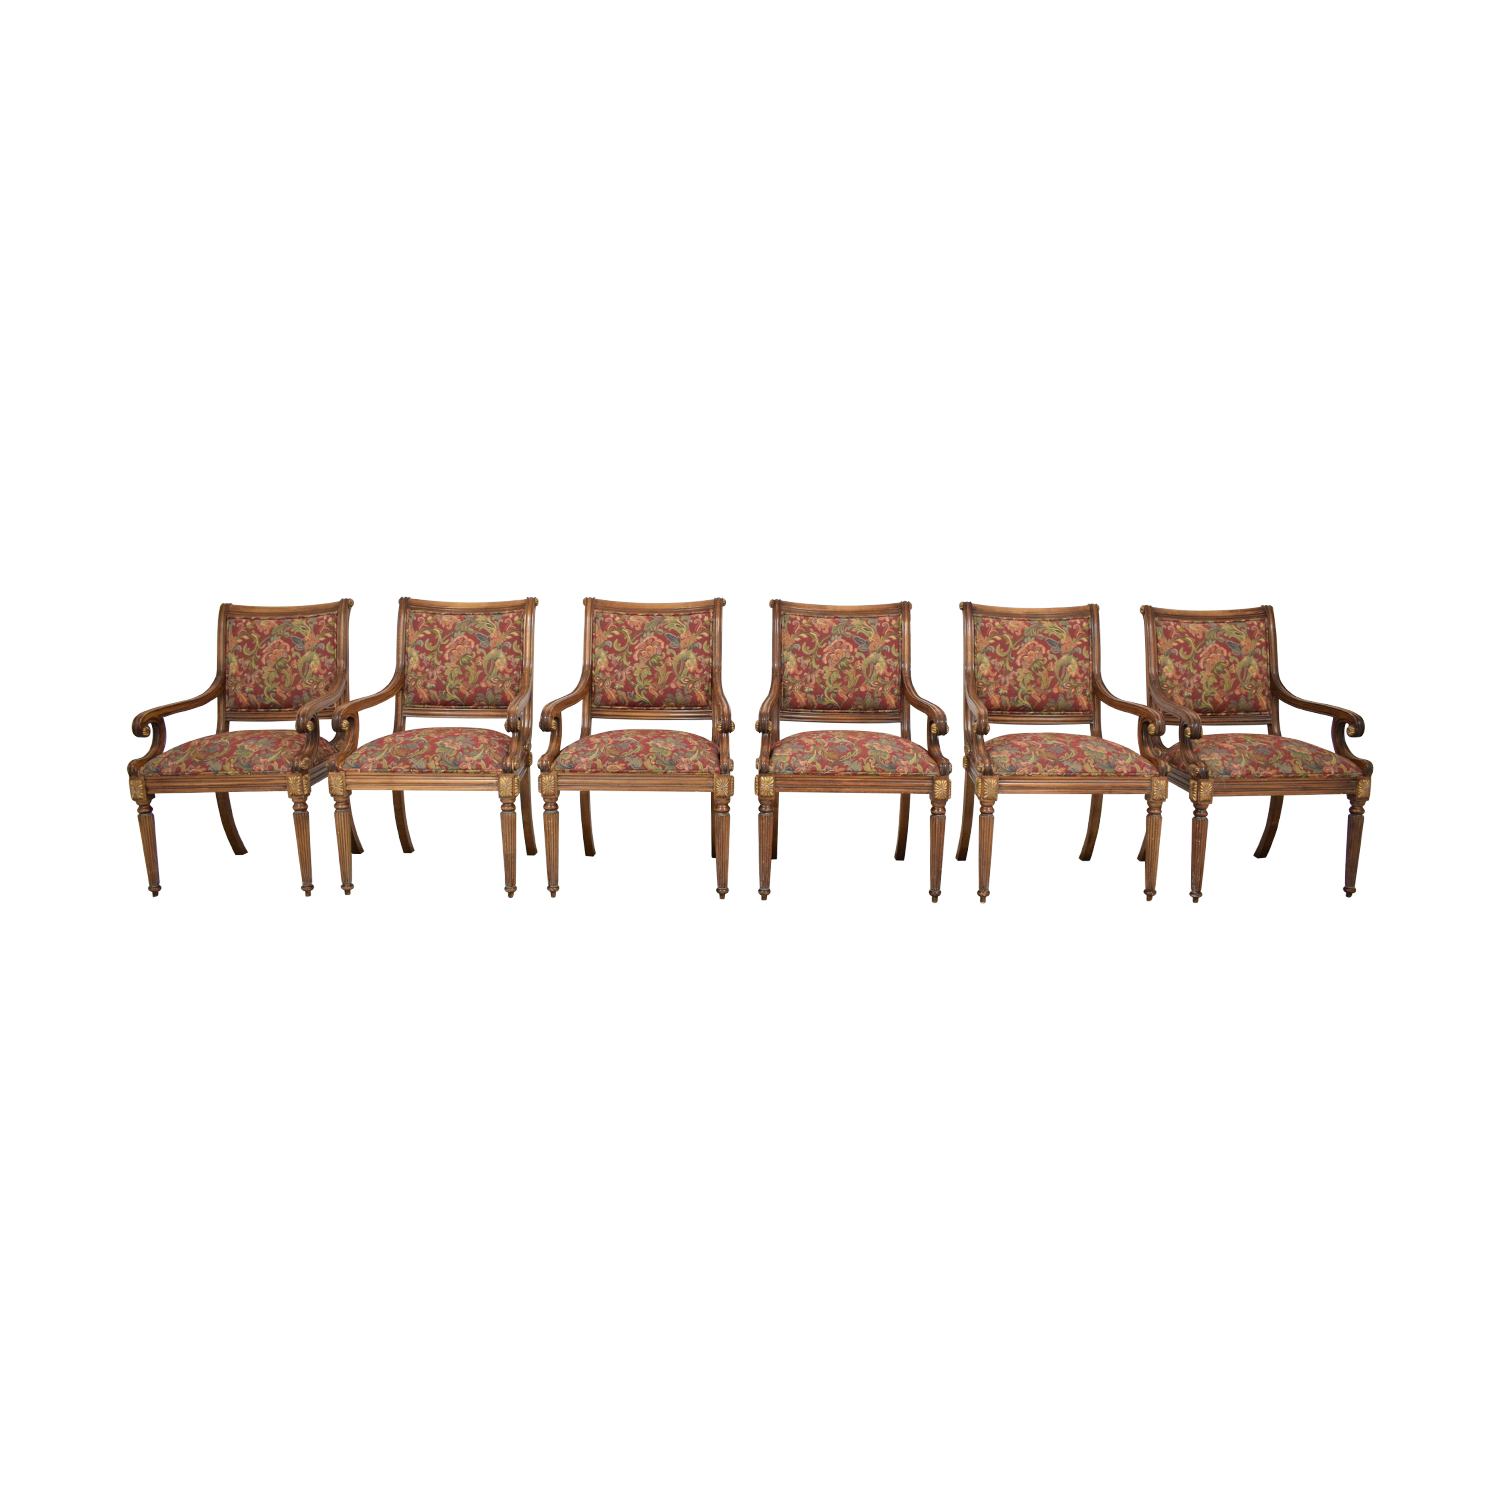 Kreiss Kreiss Upholstered Dining Chairs ma